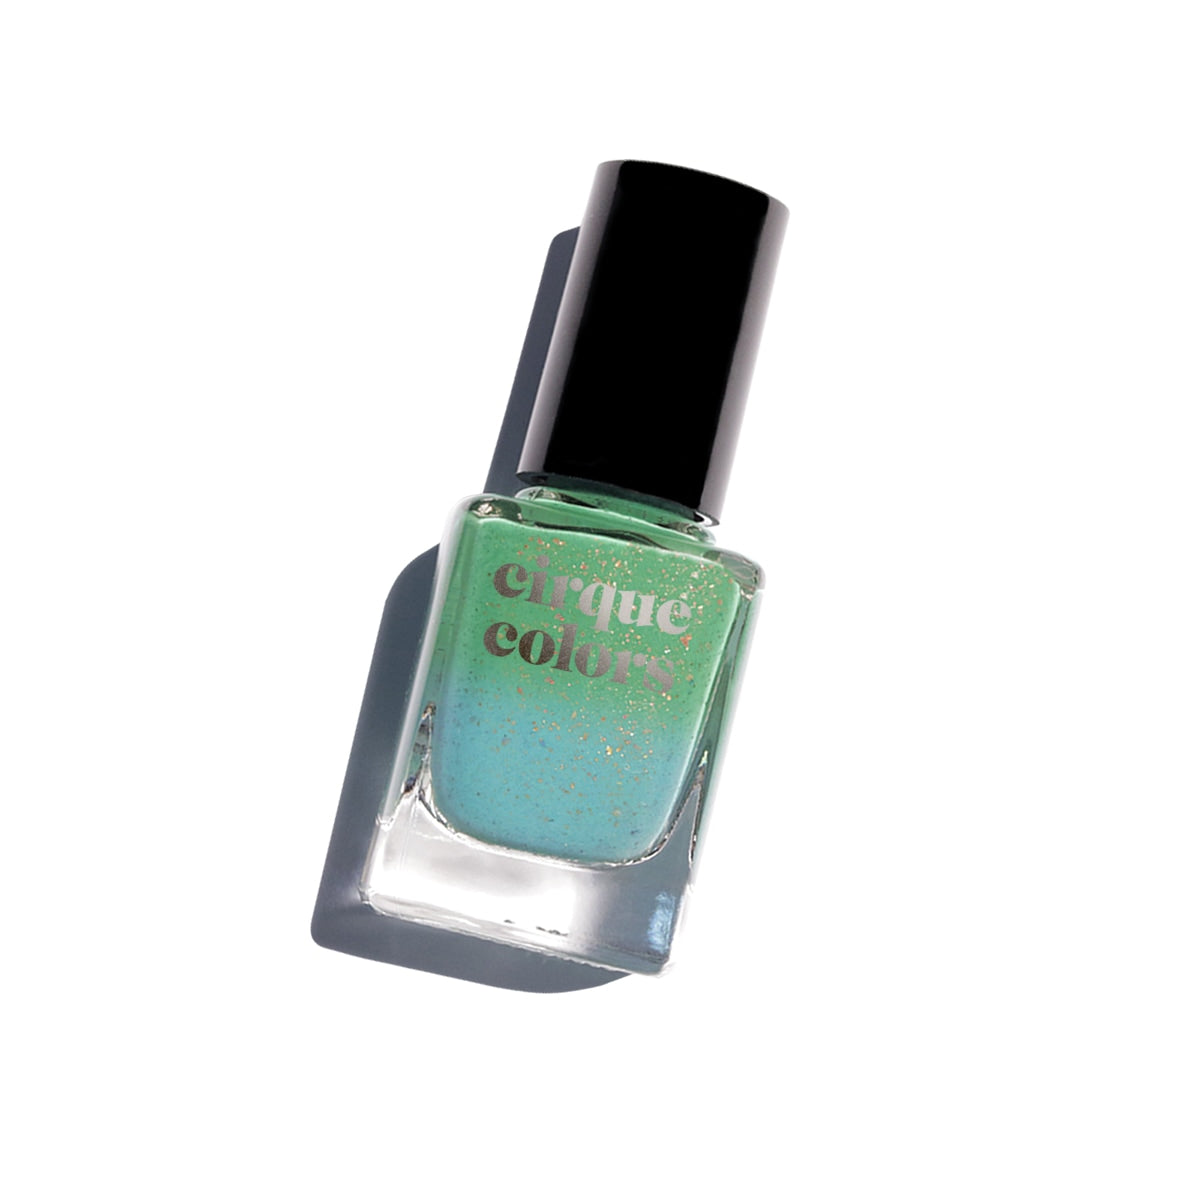 Cirque Colors - Magic Turquoise (discontinued - last chance)